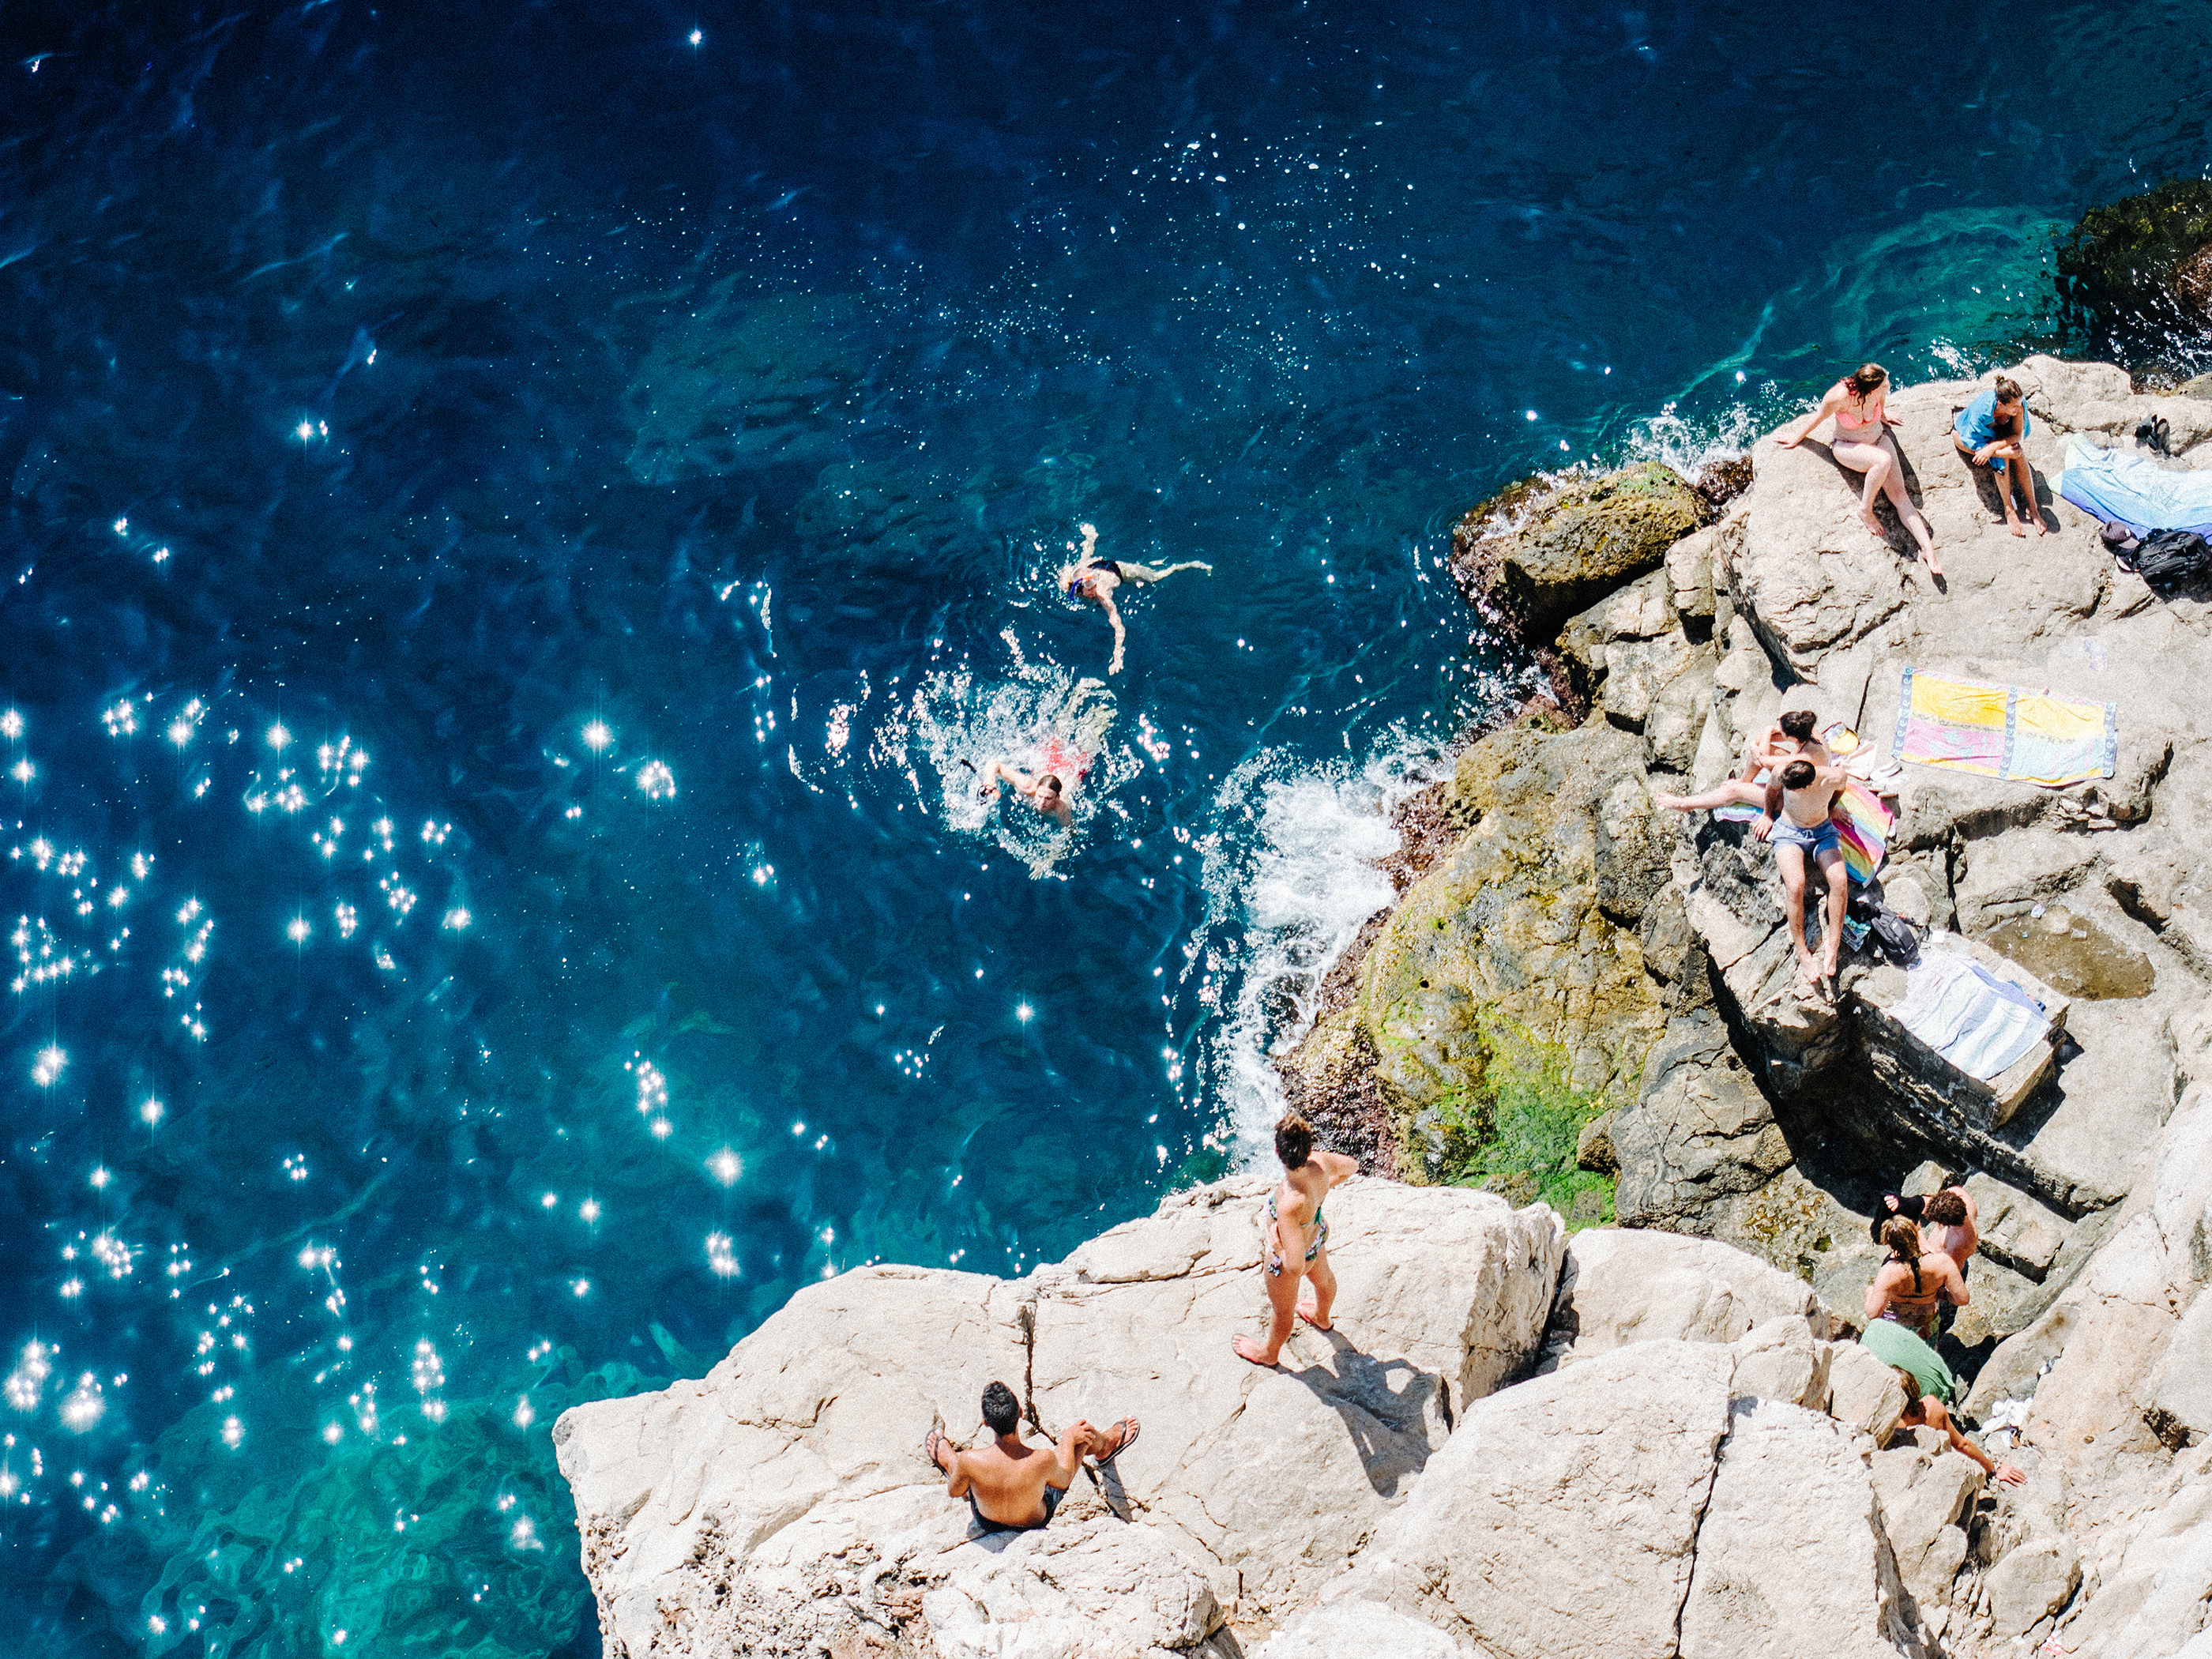 Swimming outside City Walls of Dubrovnik